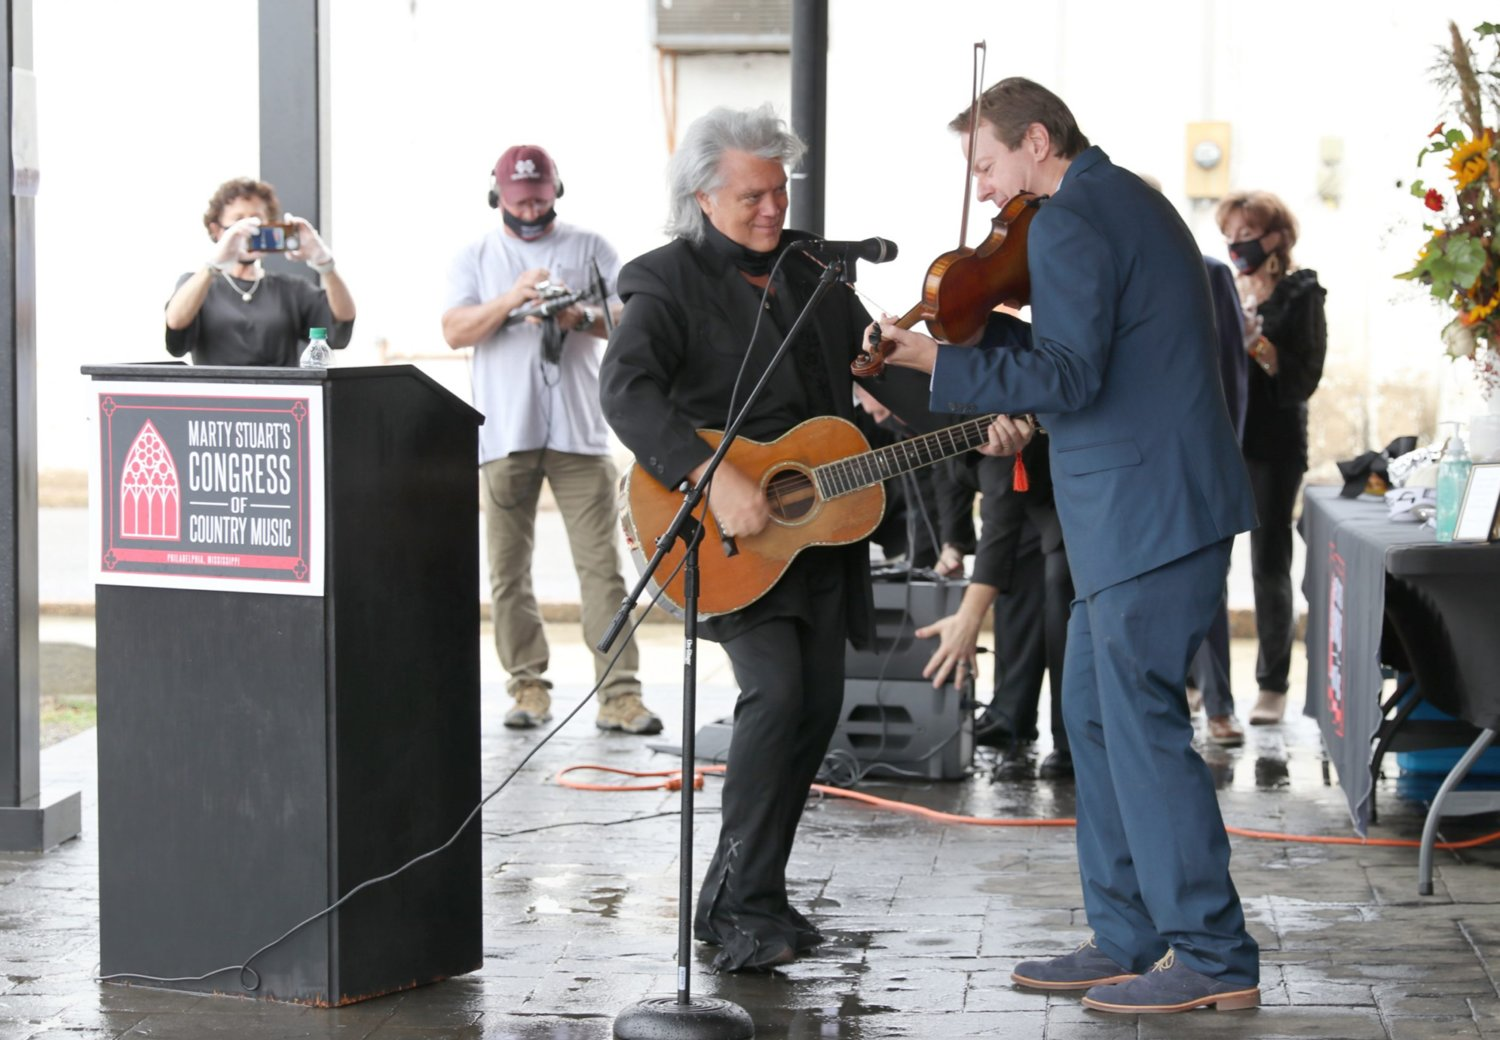 Neshoba County's own Marty Stuart jams out with bluegrass musician Stuart Duncan, right, last Wednesday during a topping off ceremony for the Marty Stuart Congress of Country Music downtown. The event was curtailed by the coronavirus pandemic.